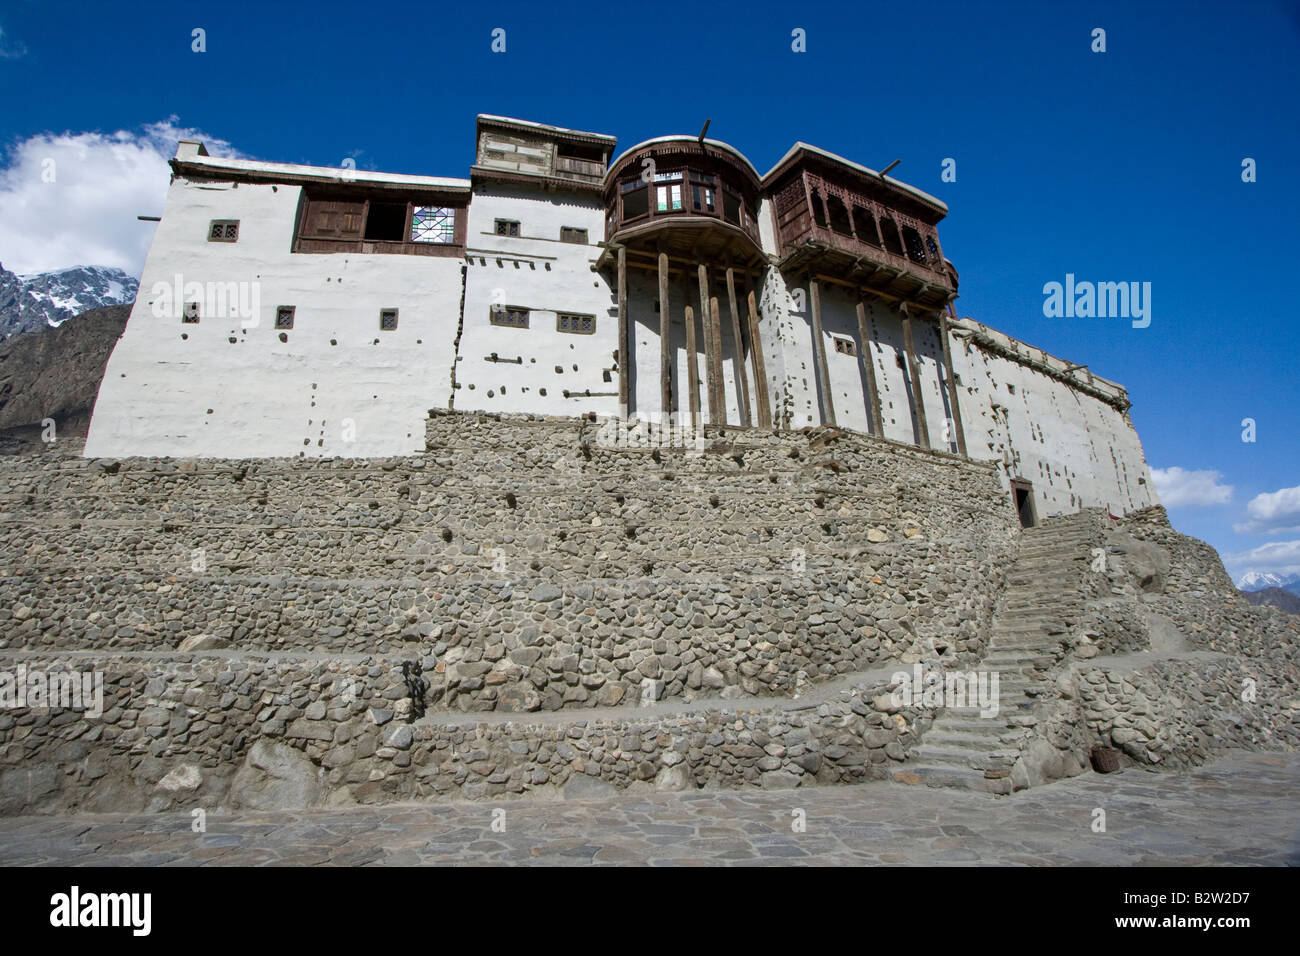 Baltit Fort in Karimabad in the Hunza Valley in Northern Pakistan - Stock Image